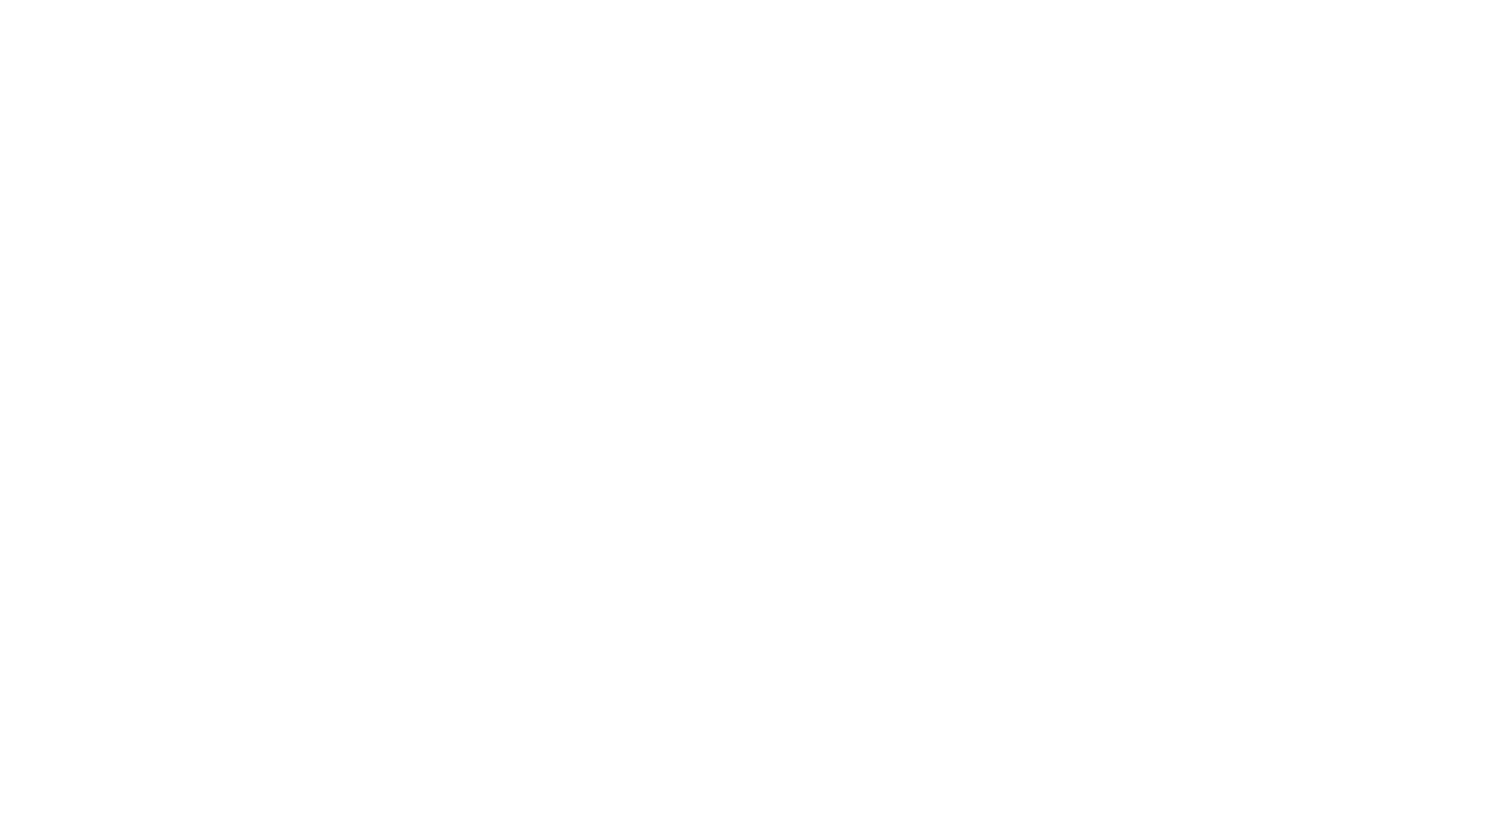 St. Joe Towing Co.